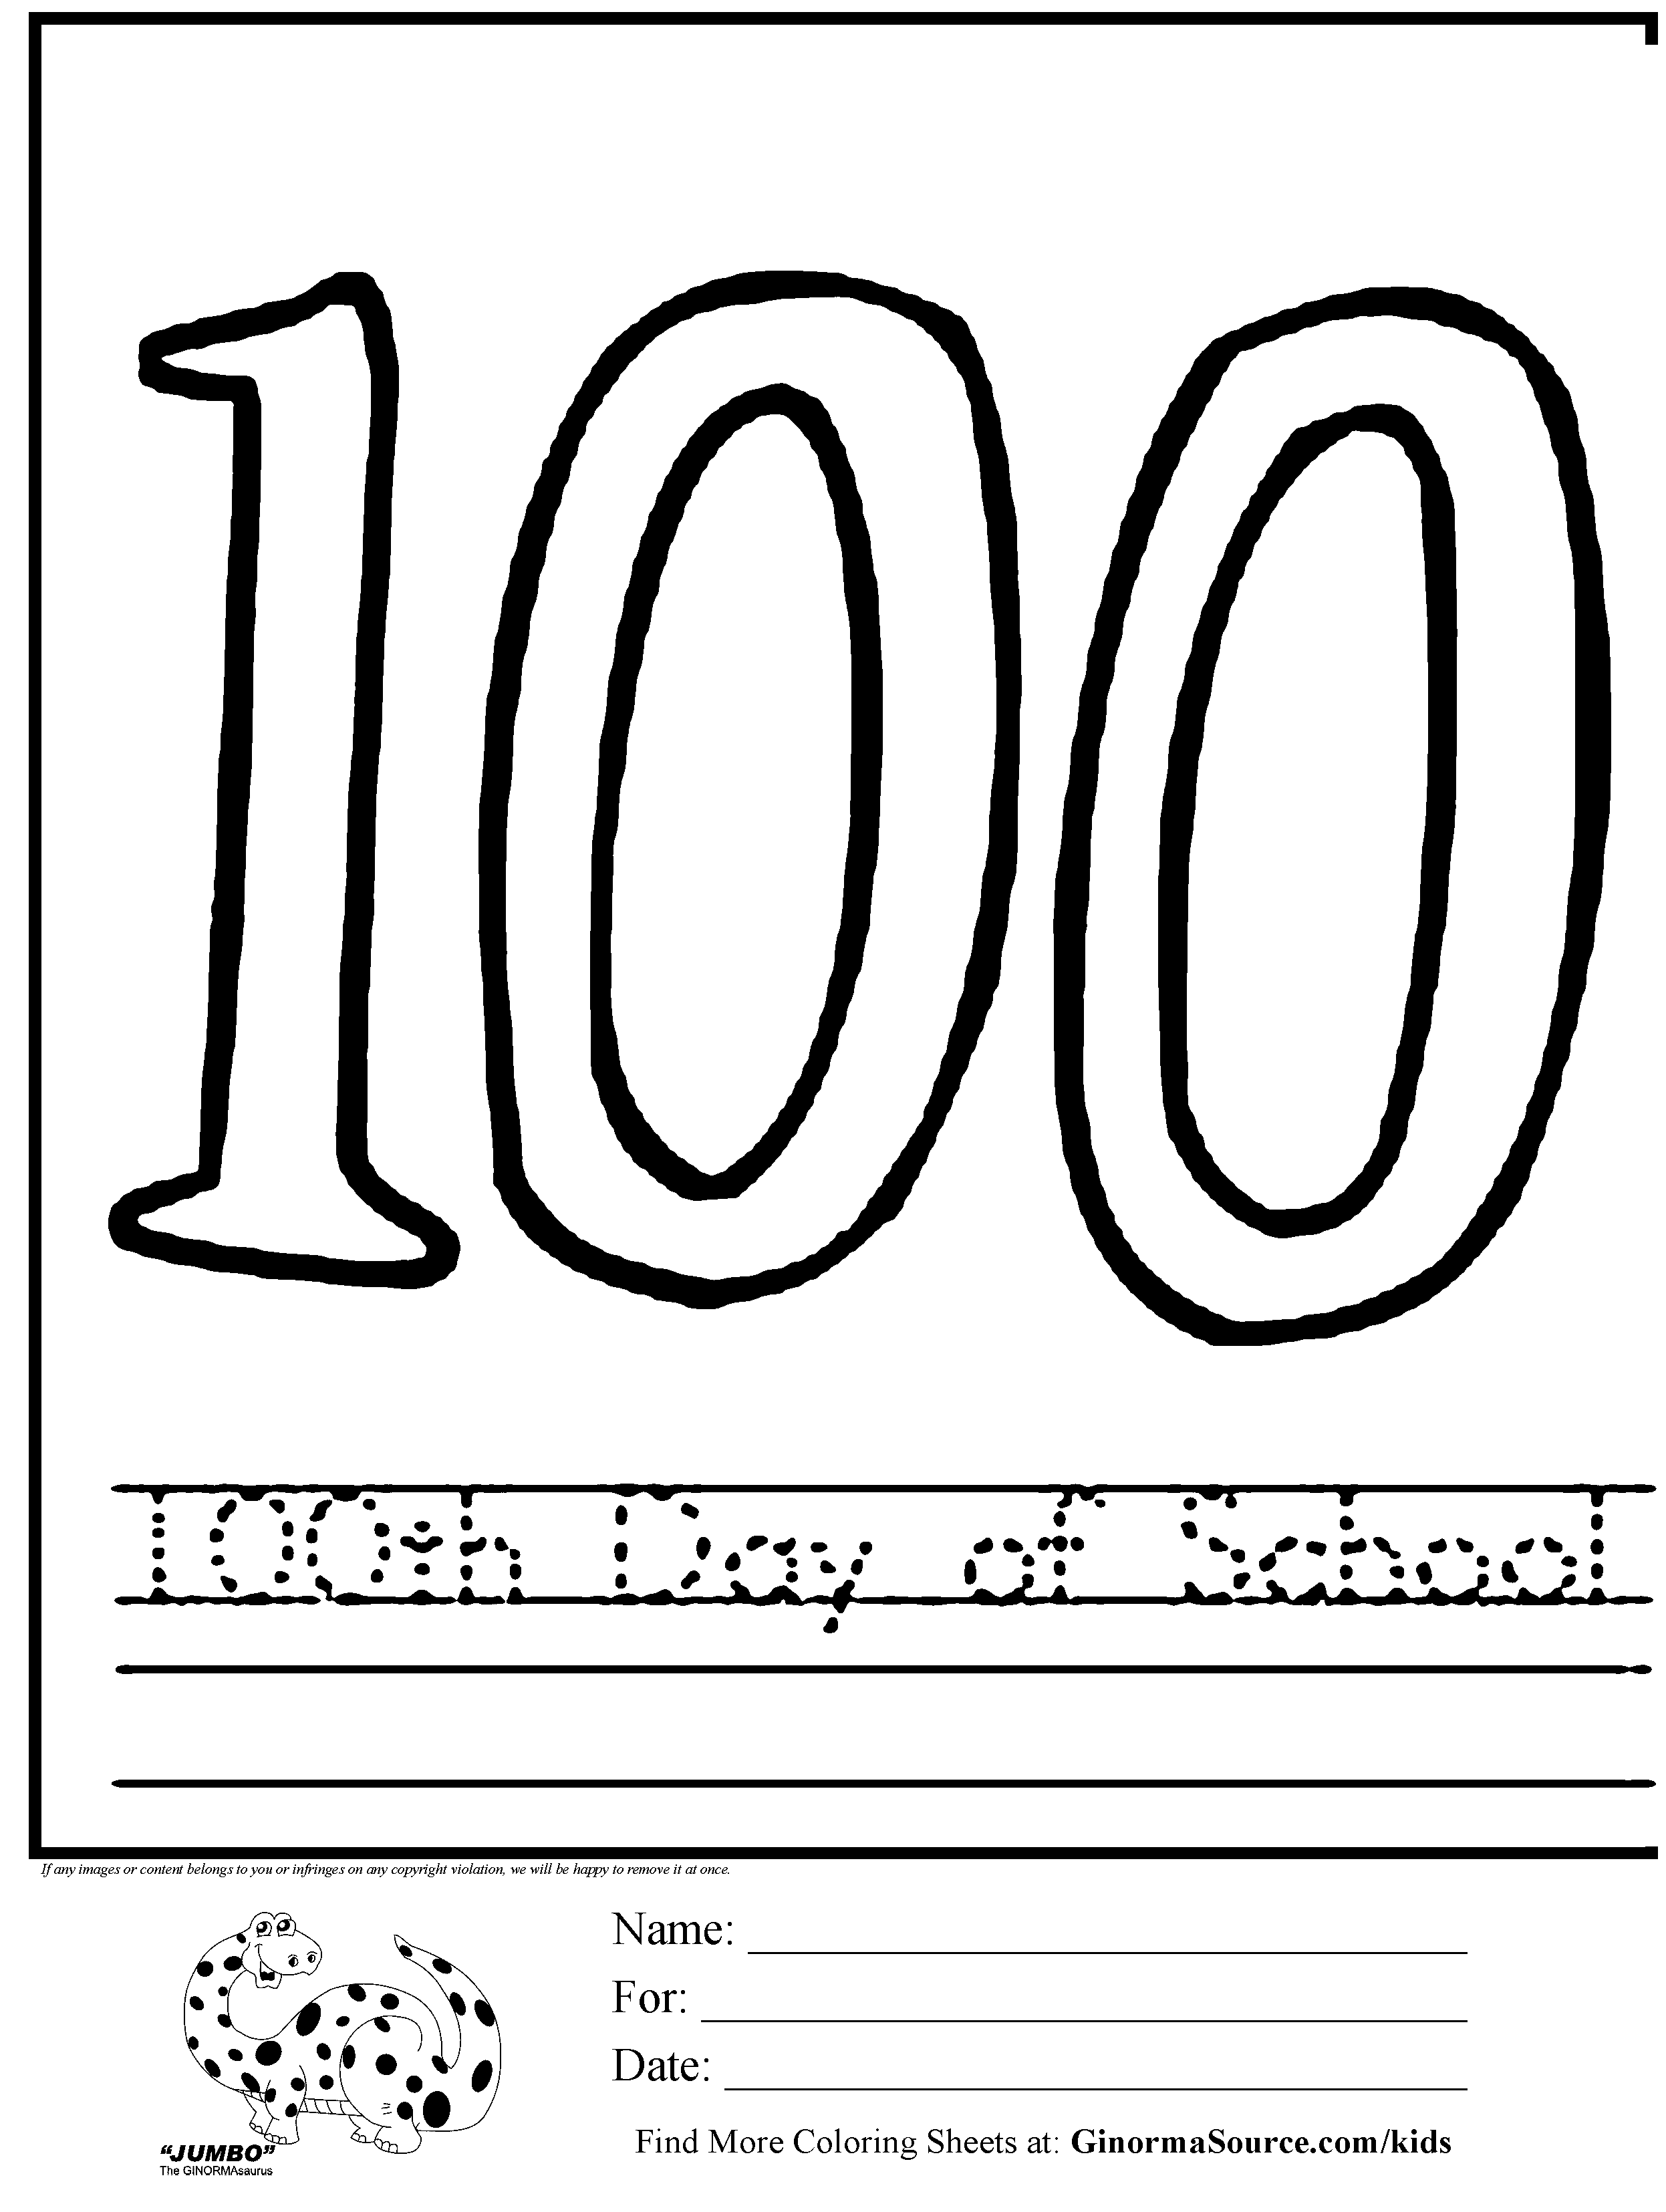 100th day of school coloring pages coloring pages for all ages